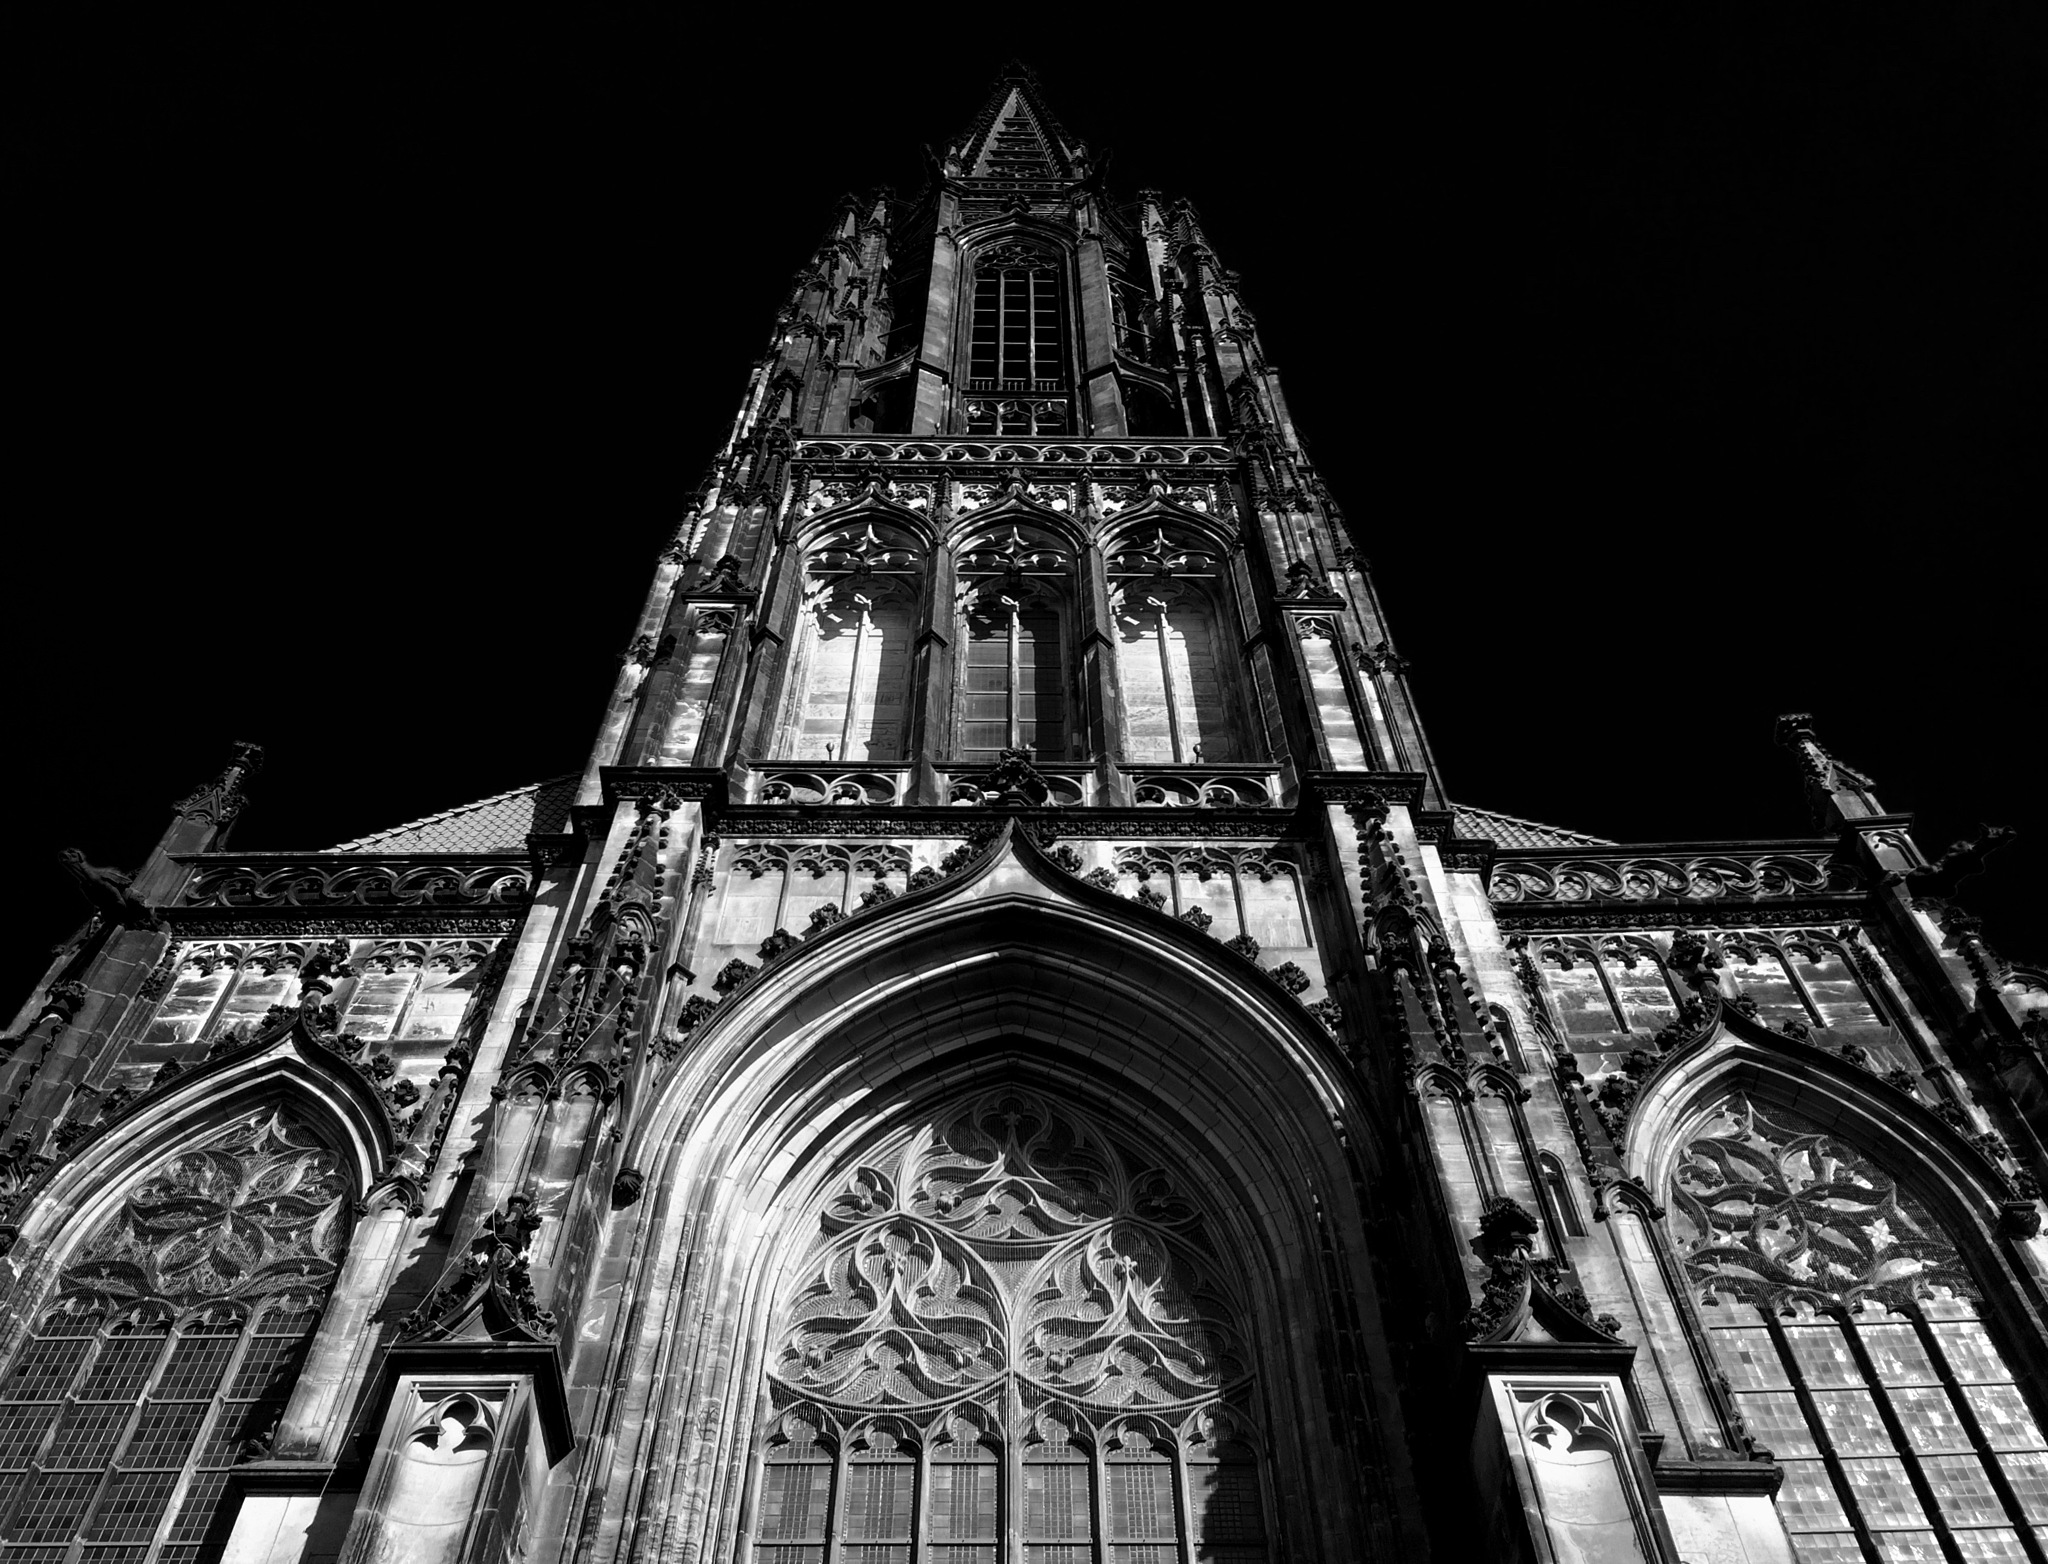 Gothic architecture. by Janis Straut